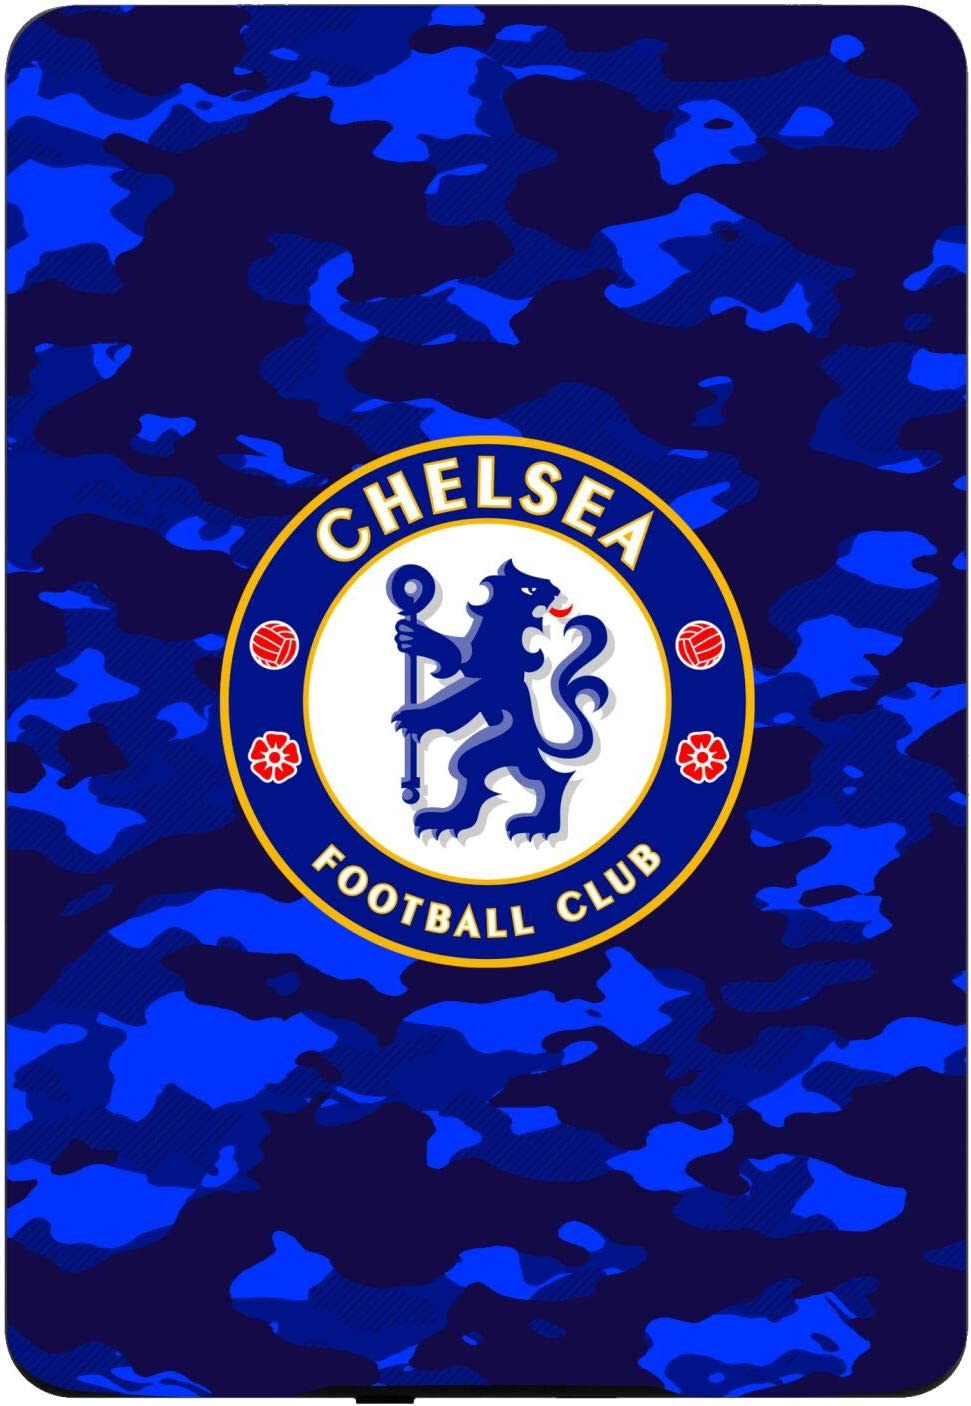 Head Case Designs Officially Licensed Chelsea Football Club Crest Camouflage Logo and Patterns Matte Vinyl Sticker Skin Decal Cover Compatible with Kindle Paperwhite 1/2 / 3